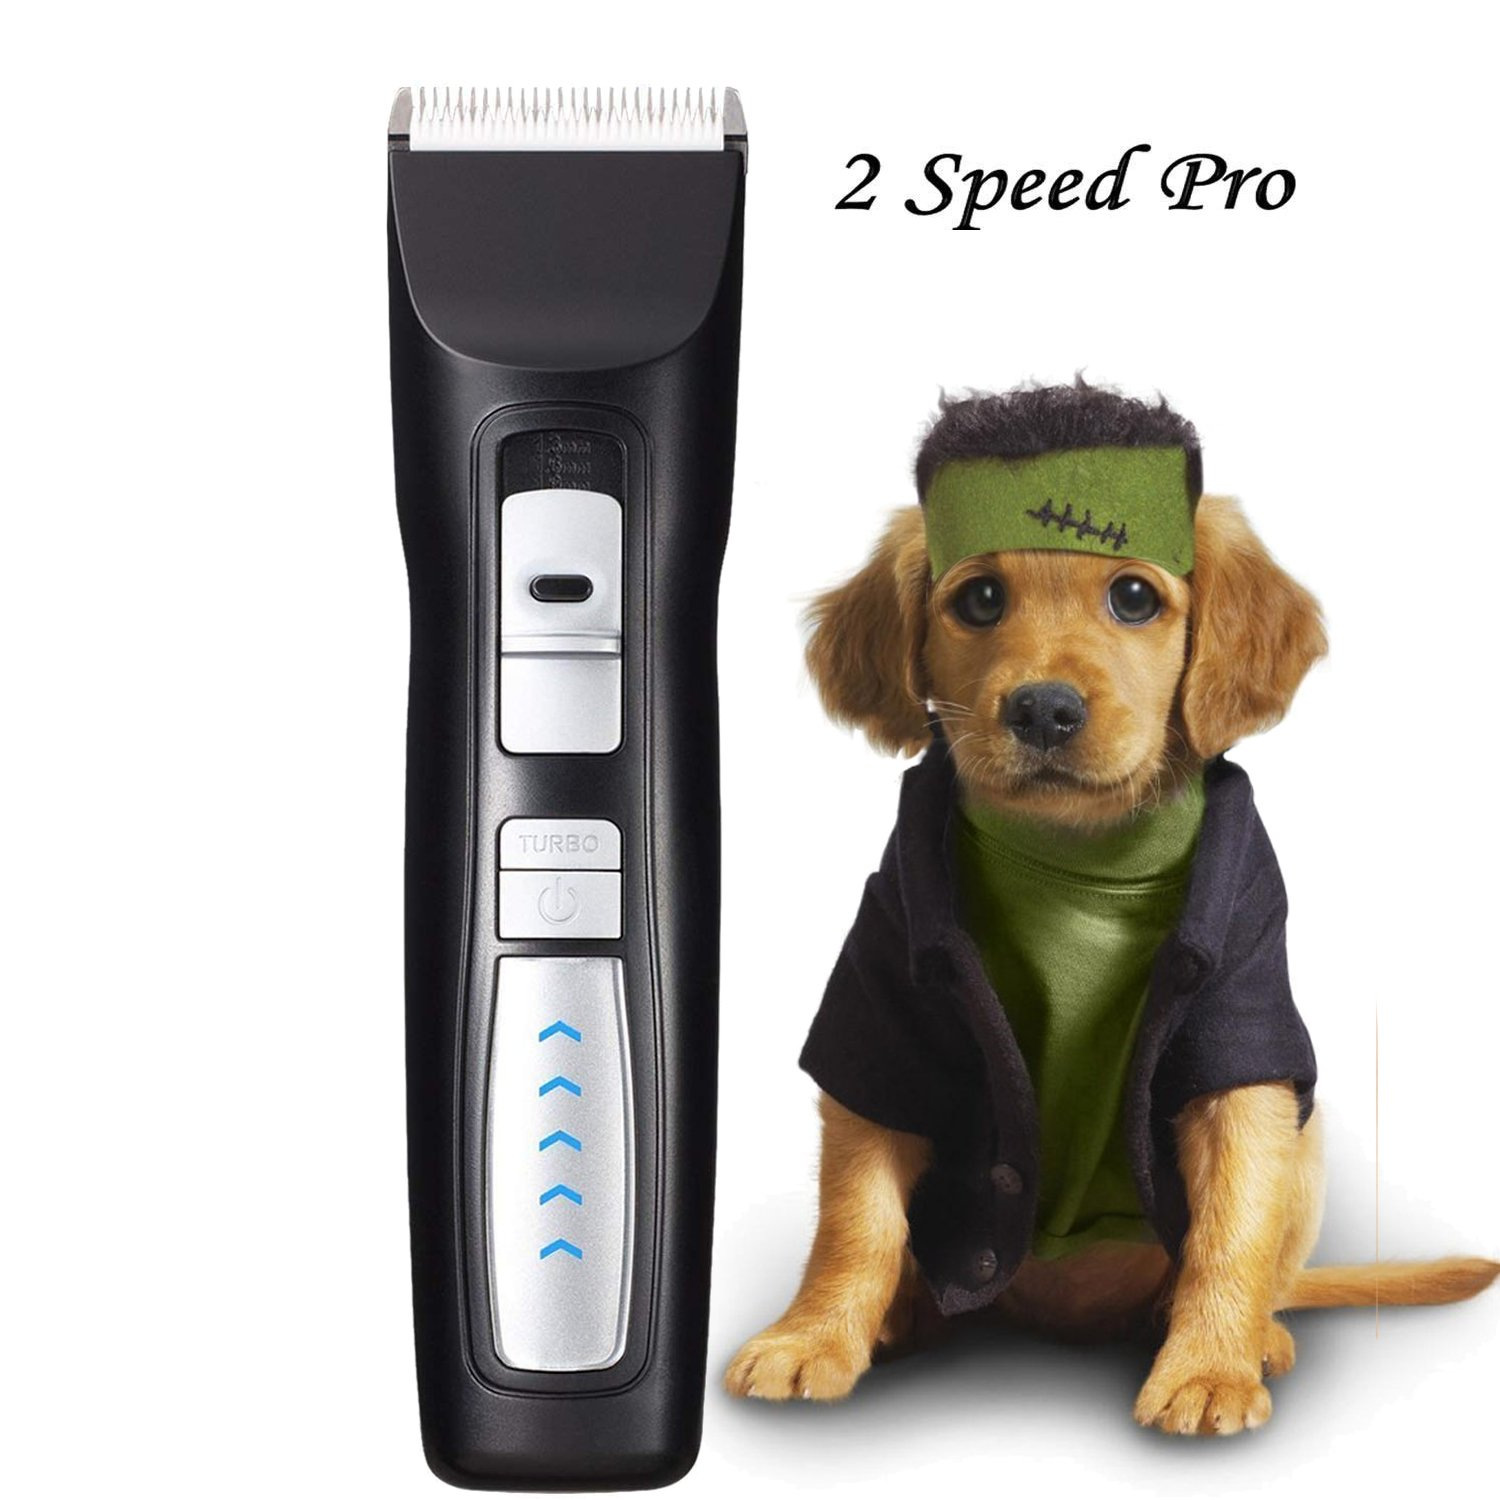 Pet Grooming Clippers, Rision Cordless Dog Clippers, 2 Speed(5500 RMP, 6500 RMP) Low Noise Professional Rechargeable Pet Clippers with Power Indicator for Cats/Dogs/Rabbits/Horses